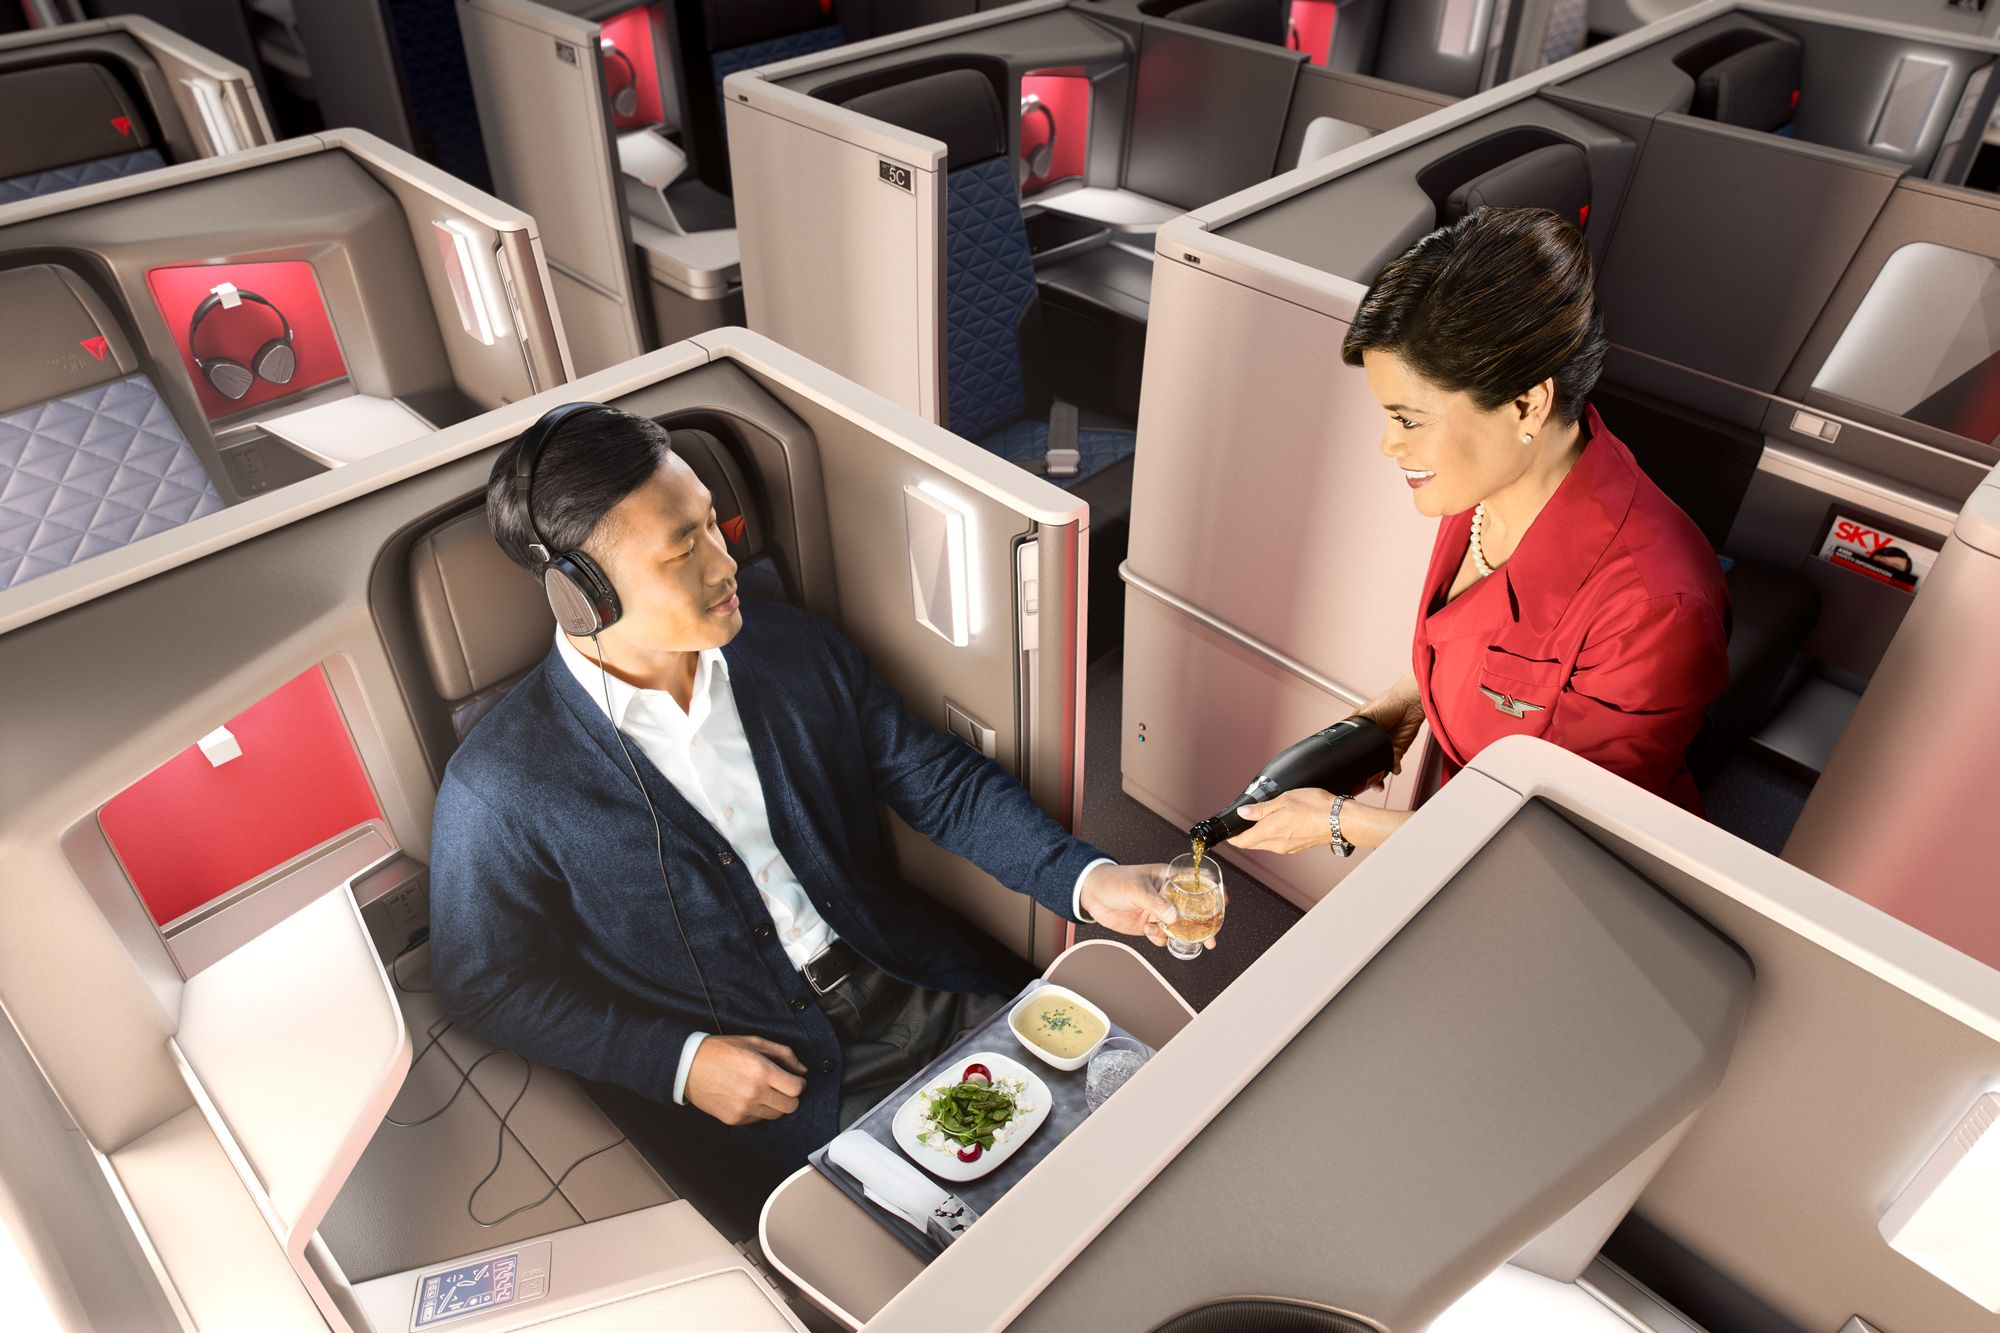 News Delta Air Lines reaches latest inflight